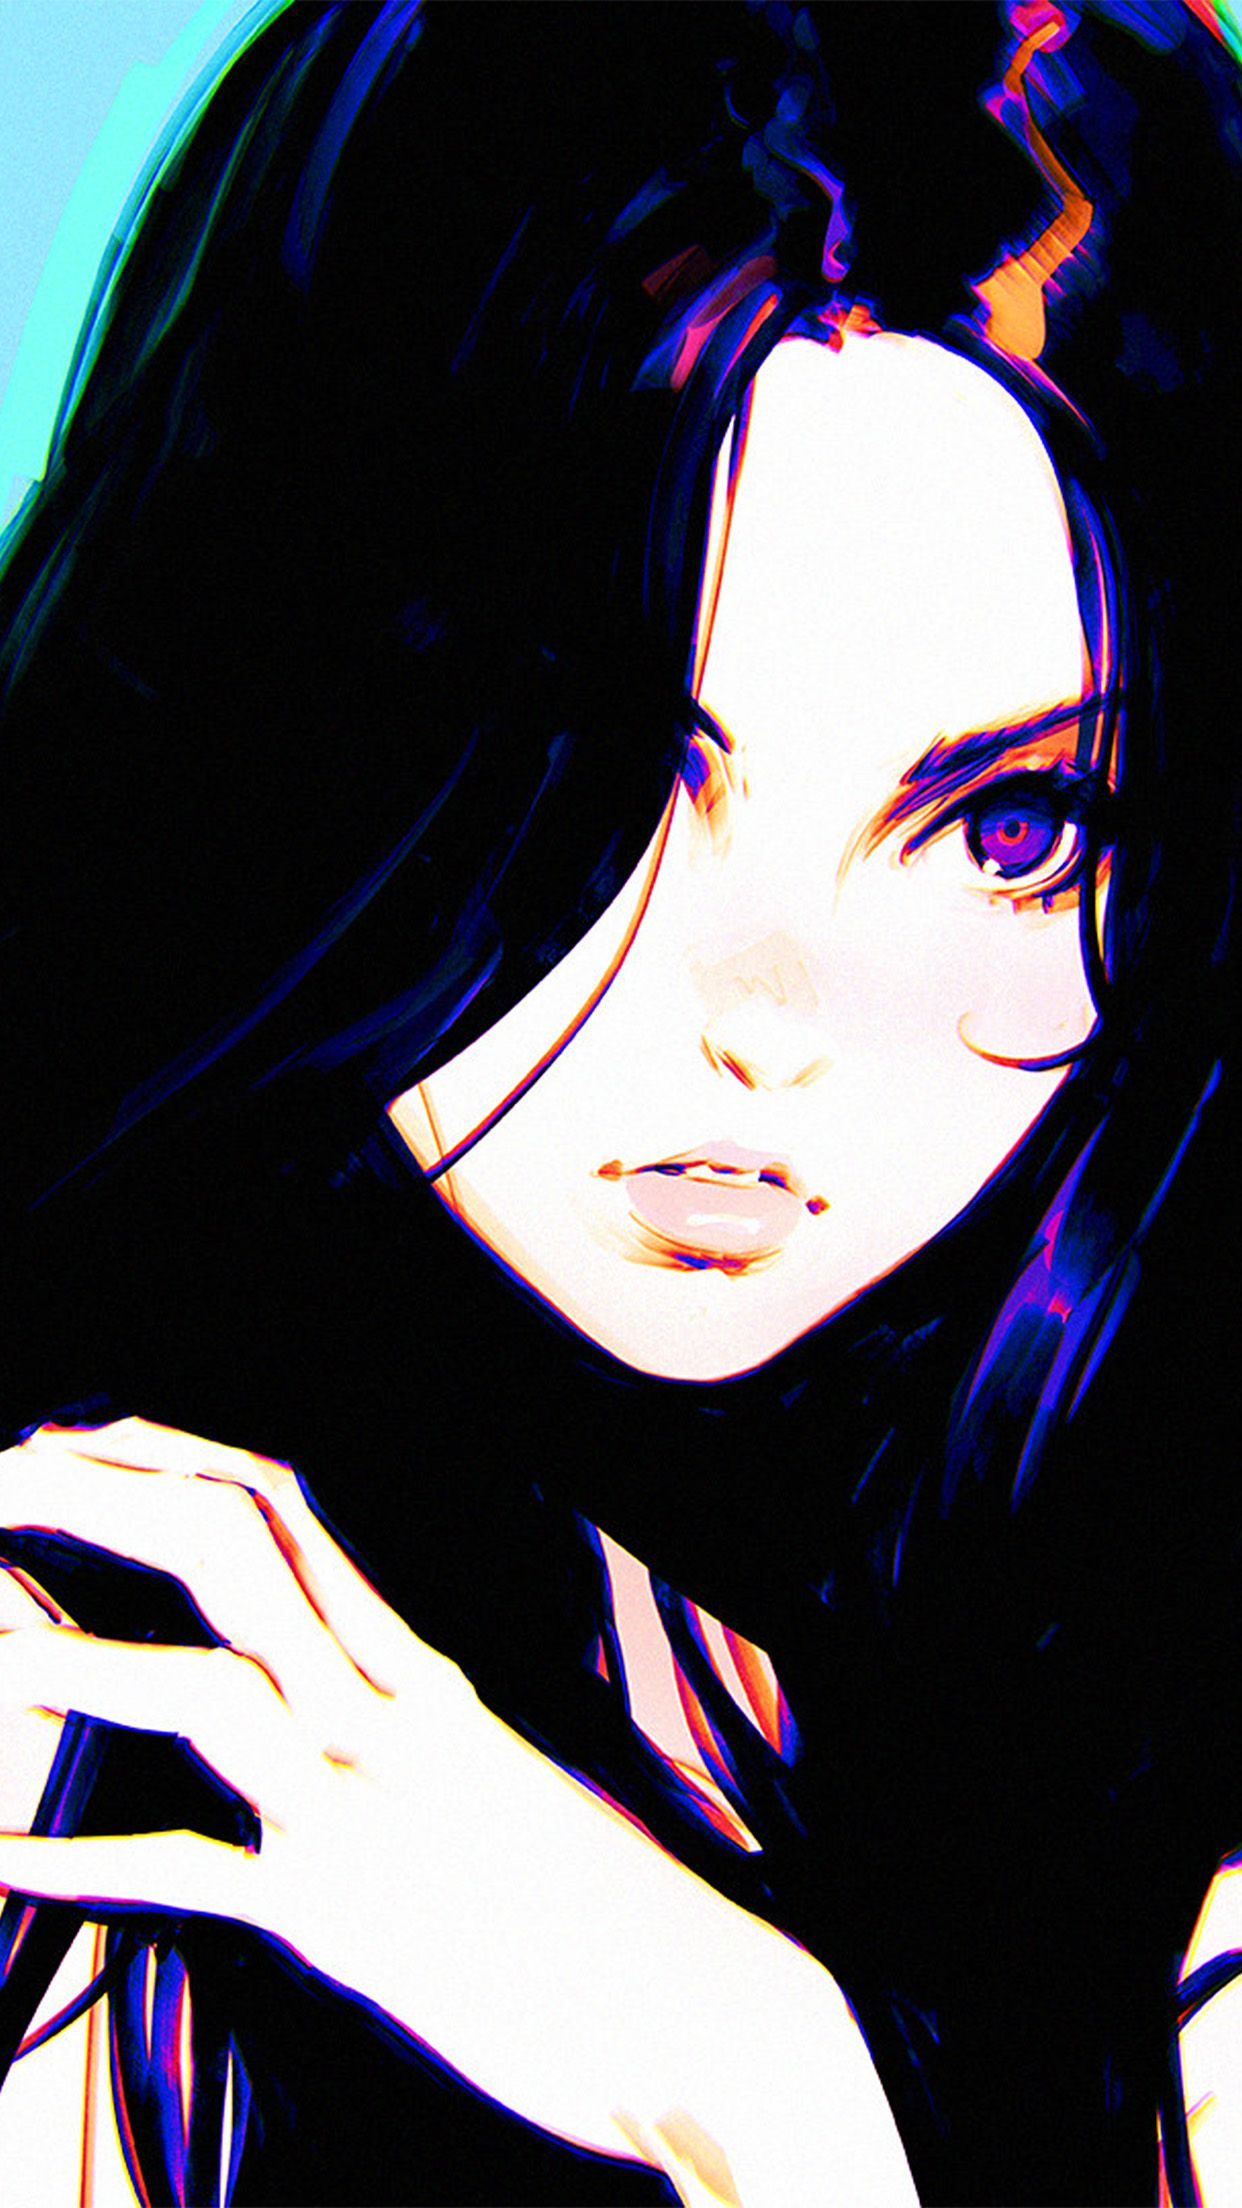 Anime Black Hair Girl Wallpapers - Wallpaper Cave